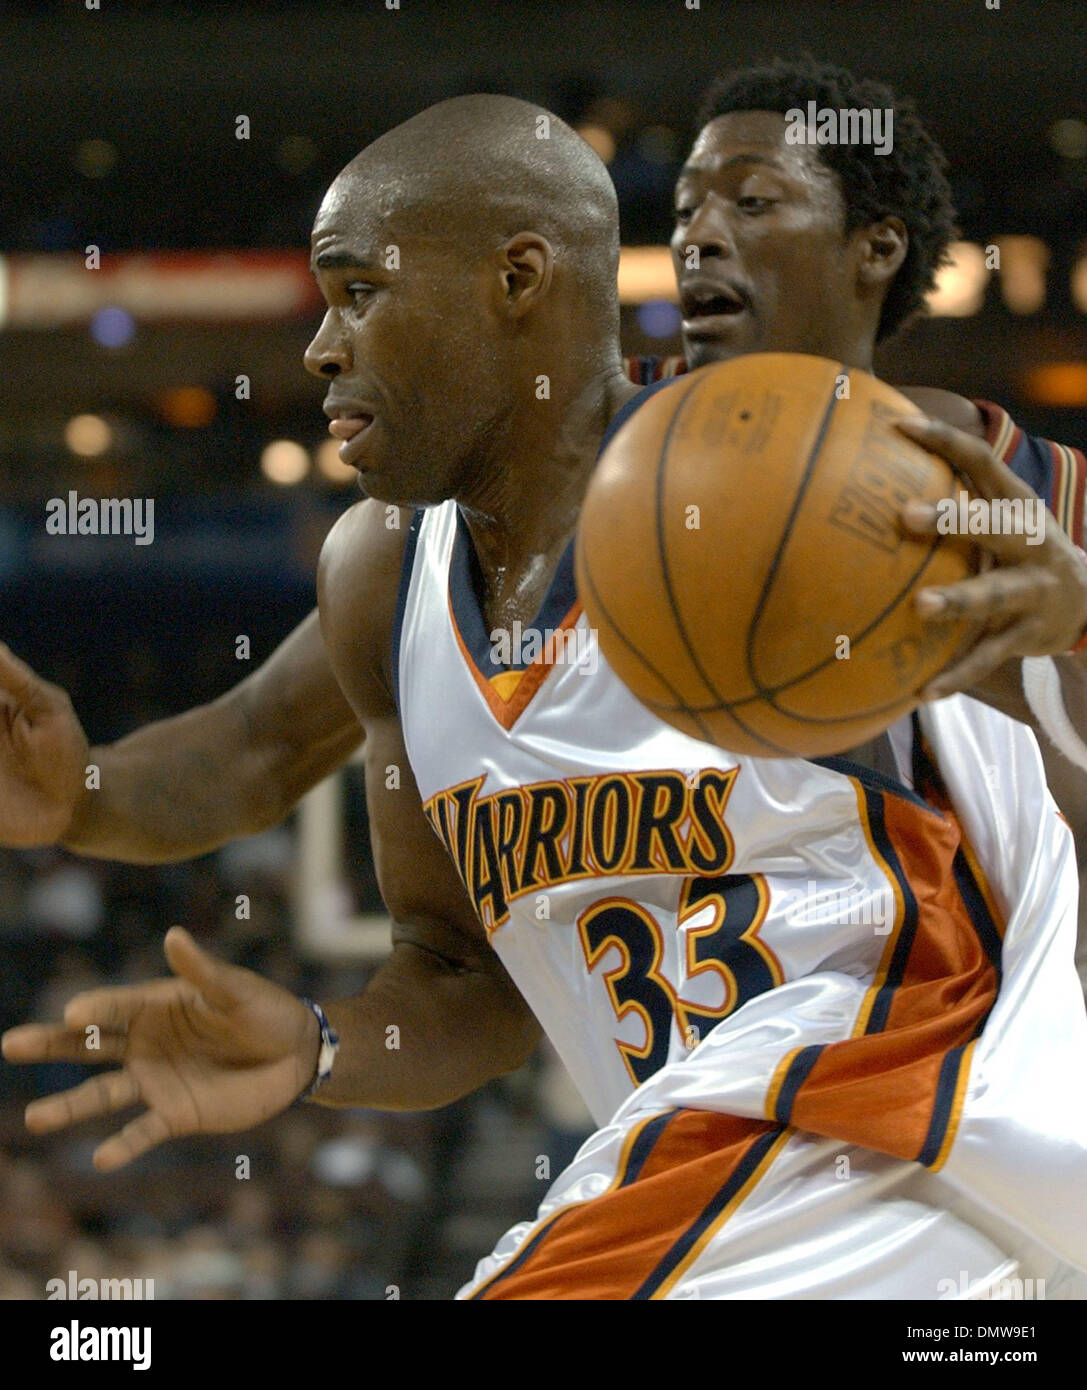 Dec 03, 2002; Oakland, CA, USA;Golden State Warriors Antawn Jamison forces his way down the baseline past Denver Nuggets Donnell Harvey, cq, in the first half of game played at The Arena in Oakland, Calif. on Tuesday December 03, 2002. Jamison scored 22 points in the first half. - Stock Image